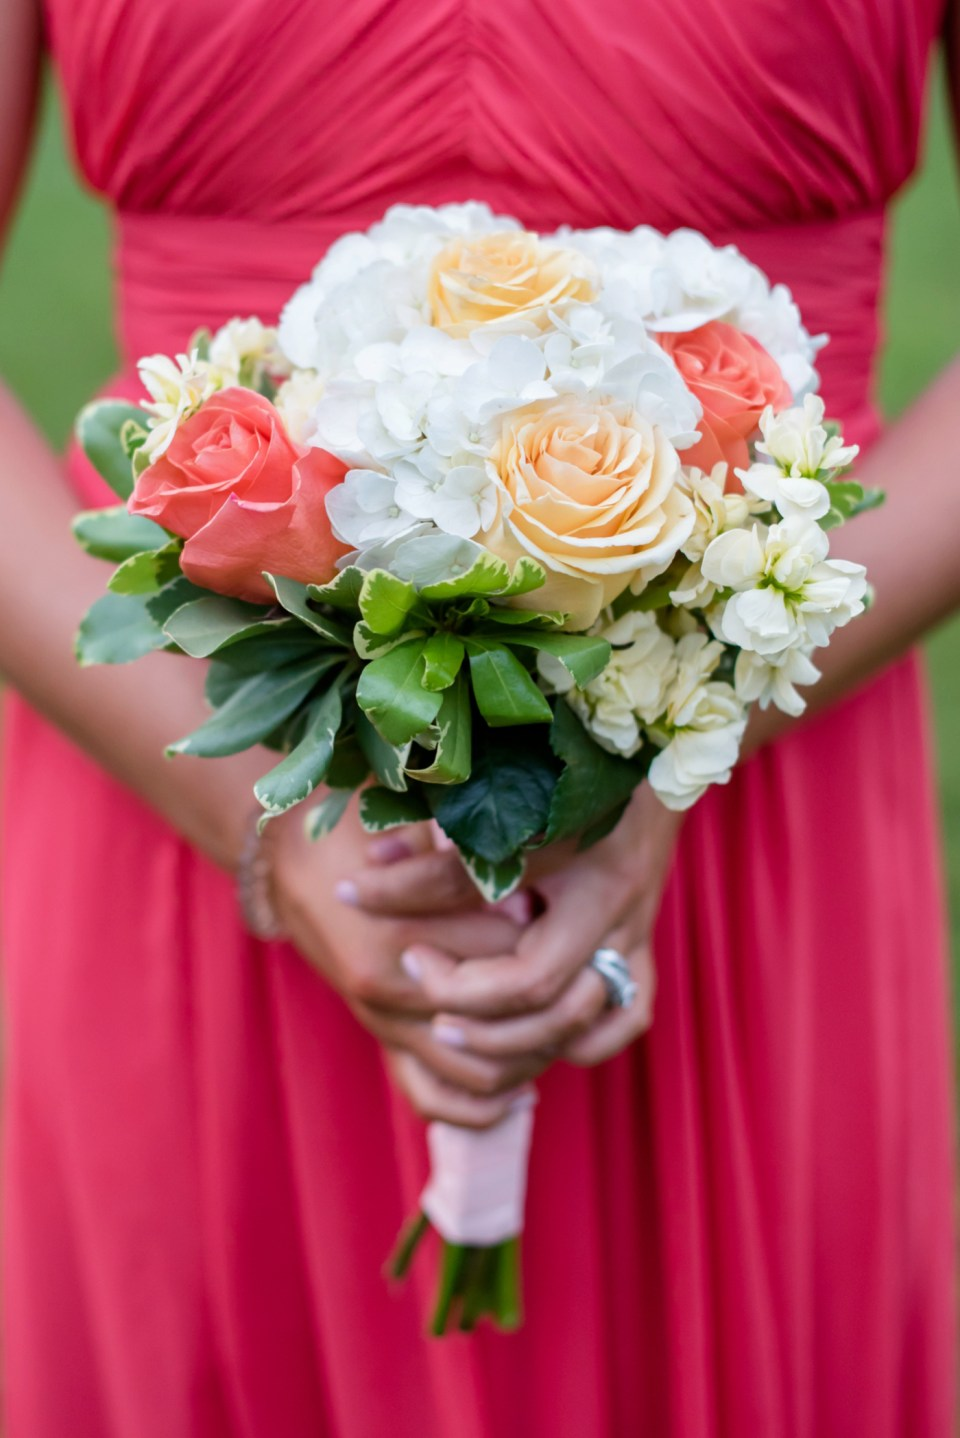 Wedding-Bouquet-Inspiration-Flowers-Bridal-Bridesmaids377